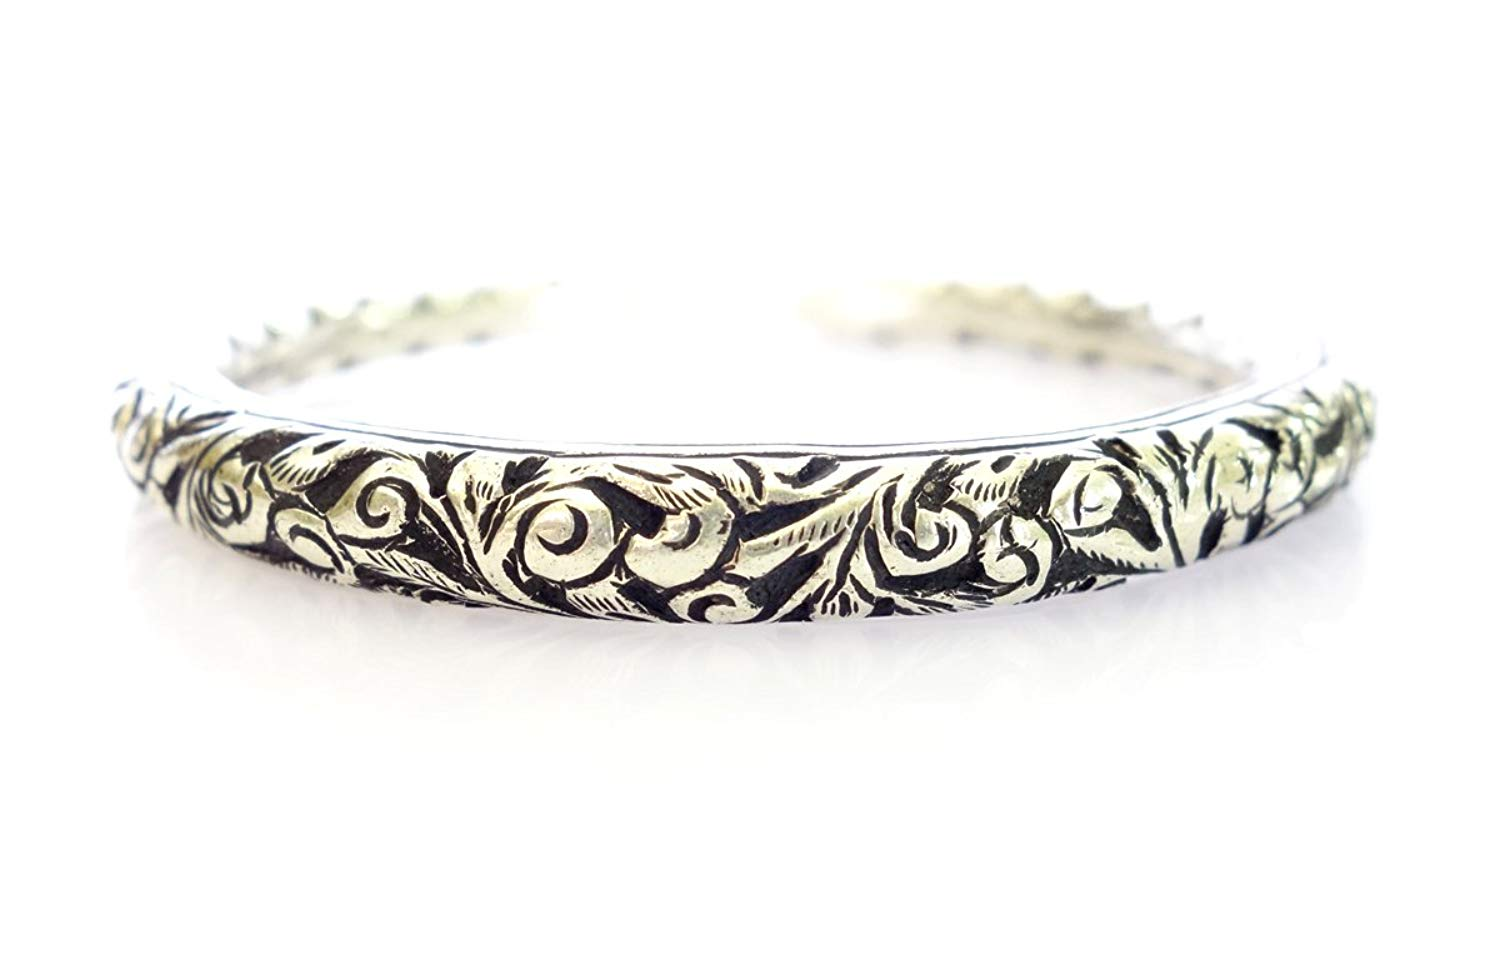 Tibetan Silver FLOWERS & PETALS ENGRAVED 925 OXIDIZED SILVER HALLMARKED ANTIQUE VINTAGE STYLE GYPSY BANGLE BRACELET FOR WOMEN FINE HANDMADE VINTAGE TRIBAL BRACELET